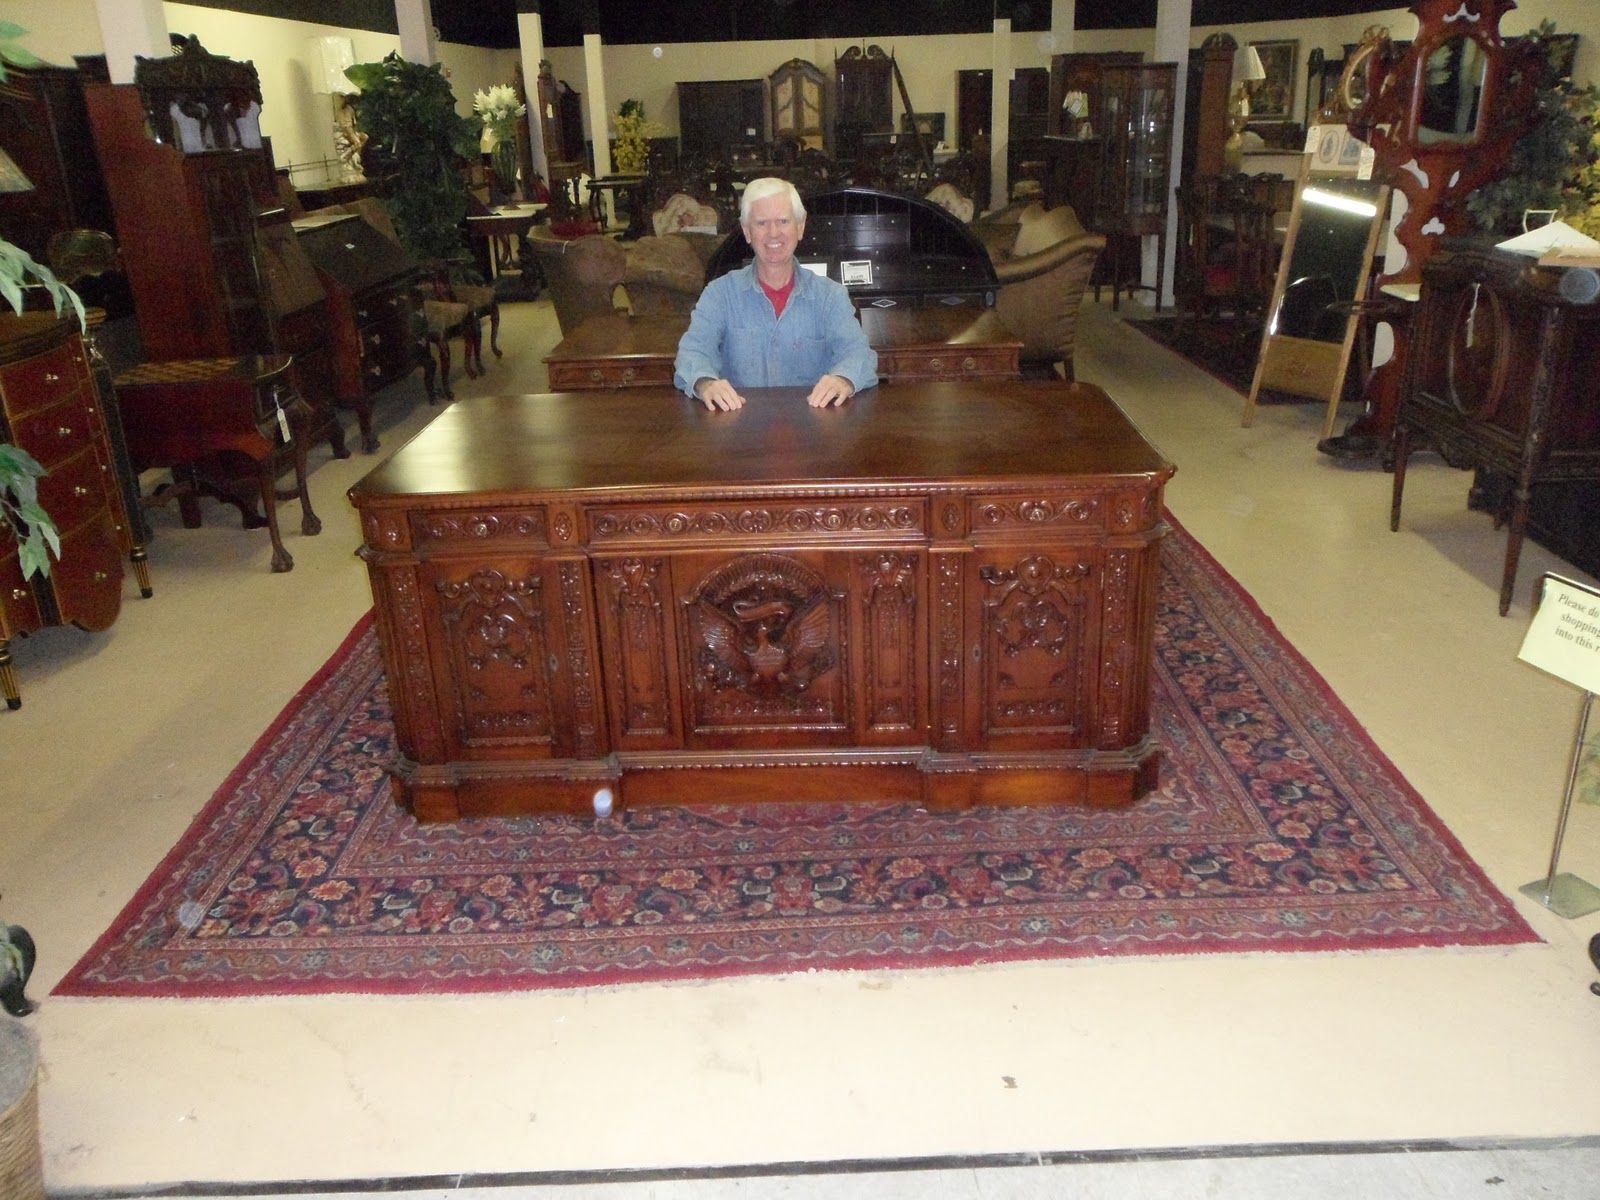 Replica Of A Resolute Desk On Display In An Antique Ping Mall